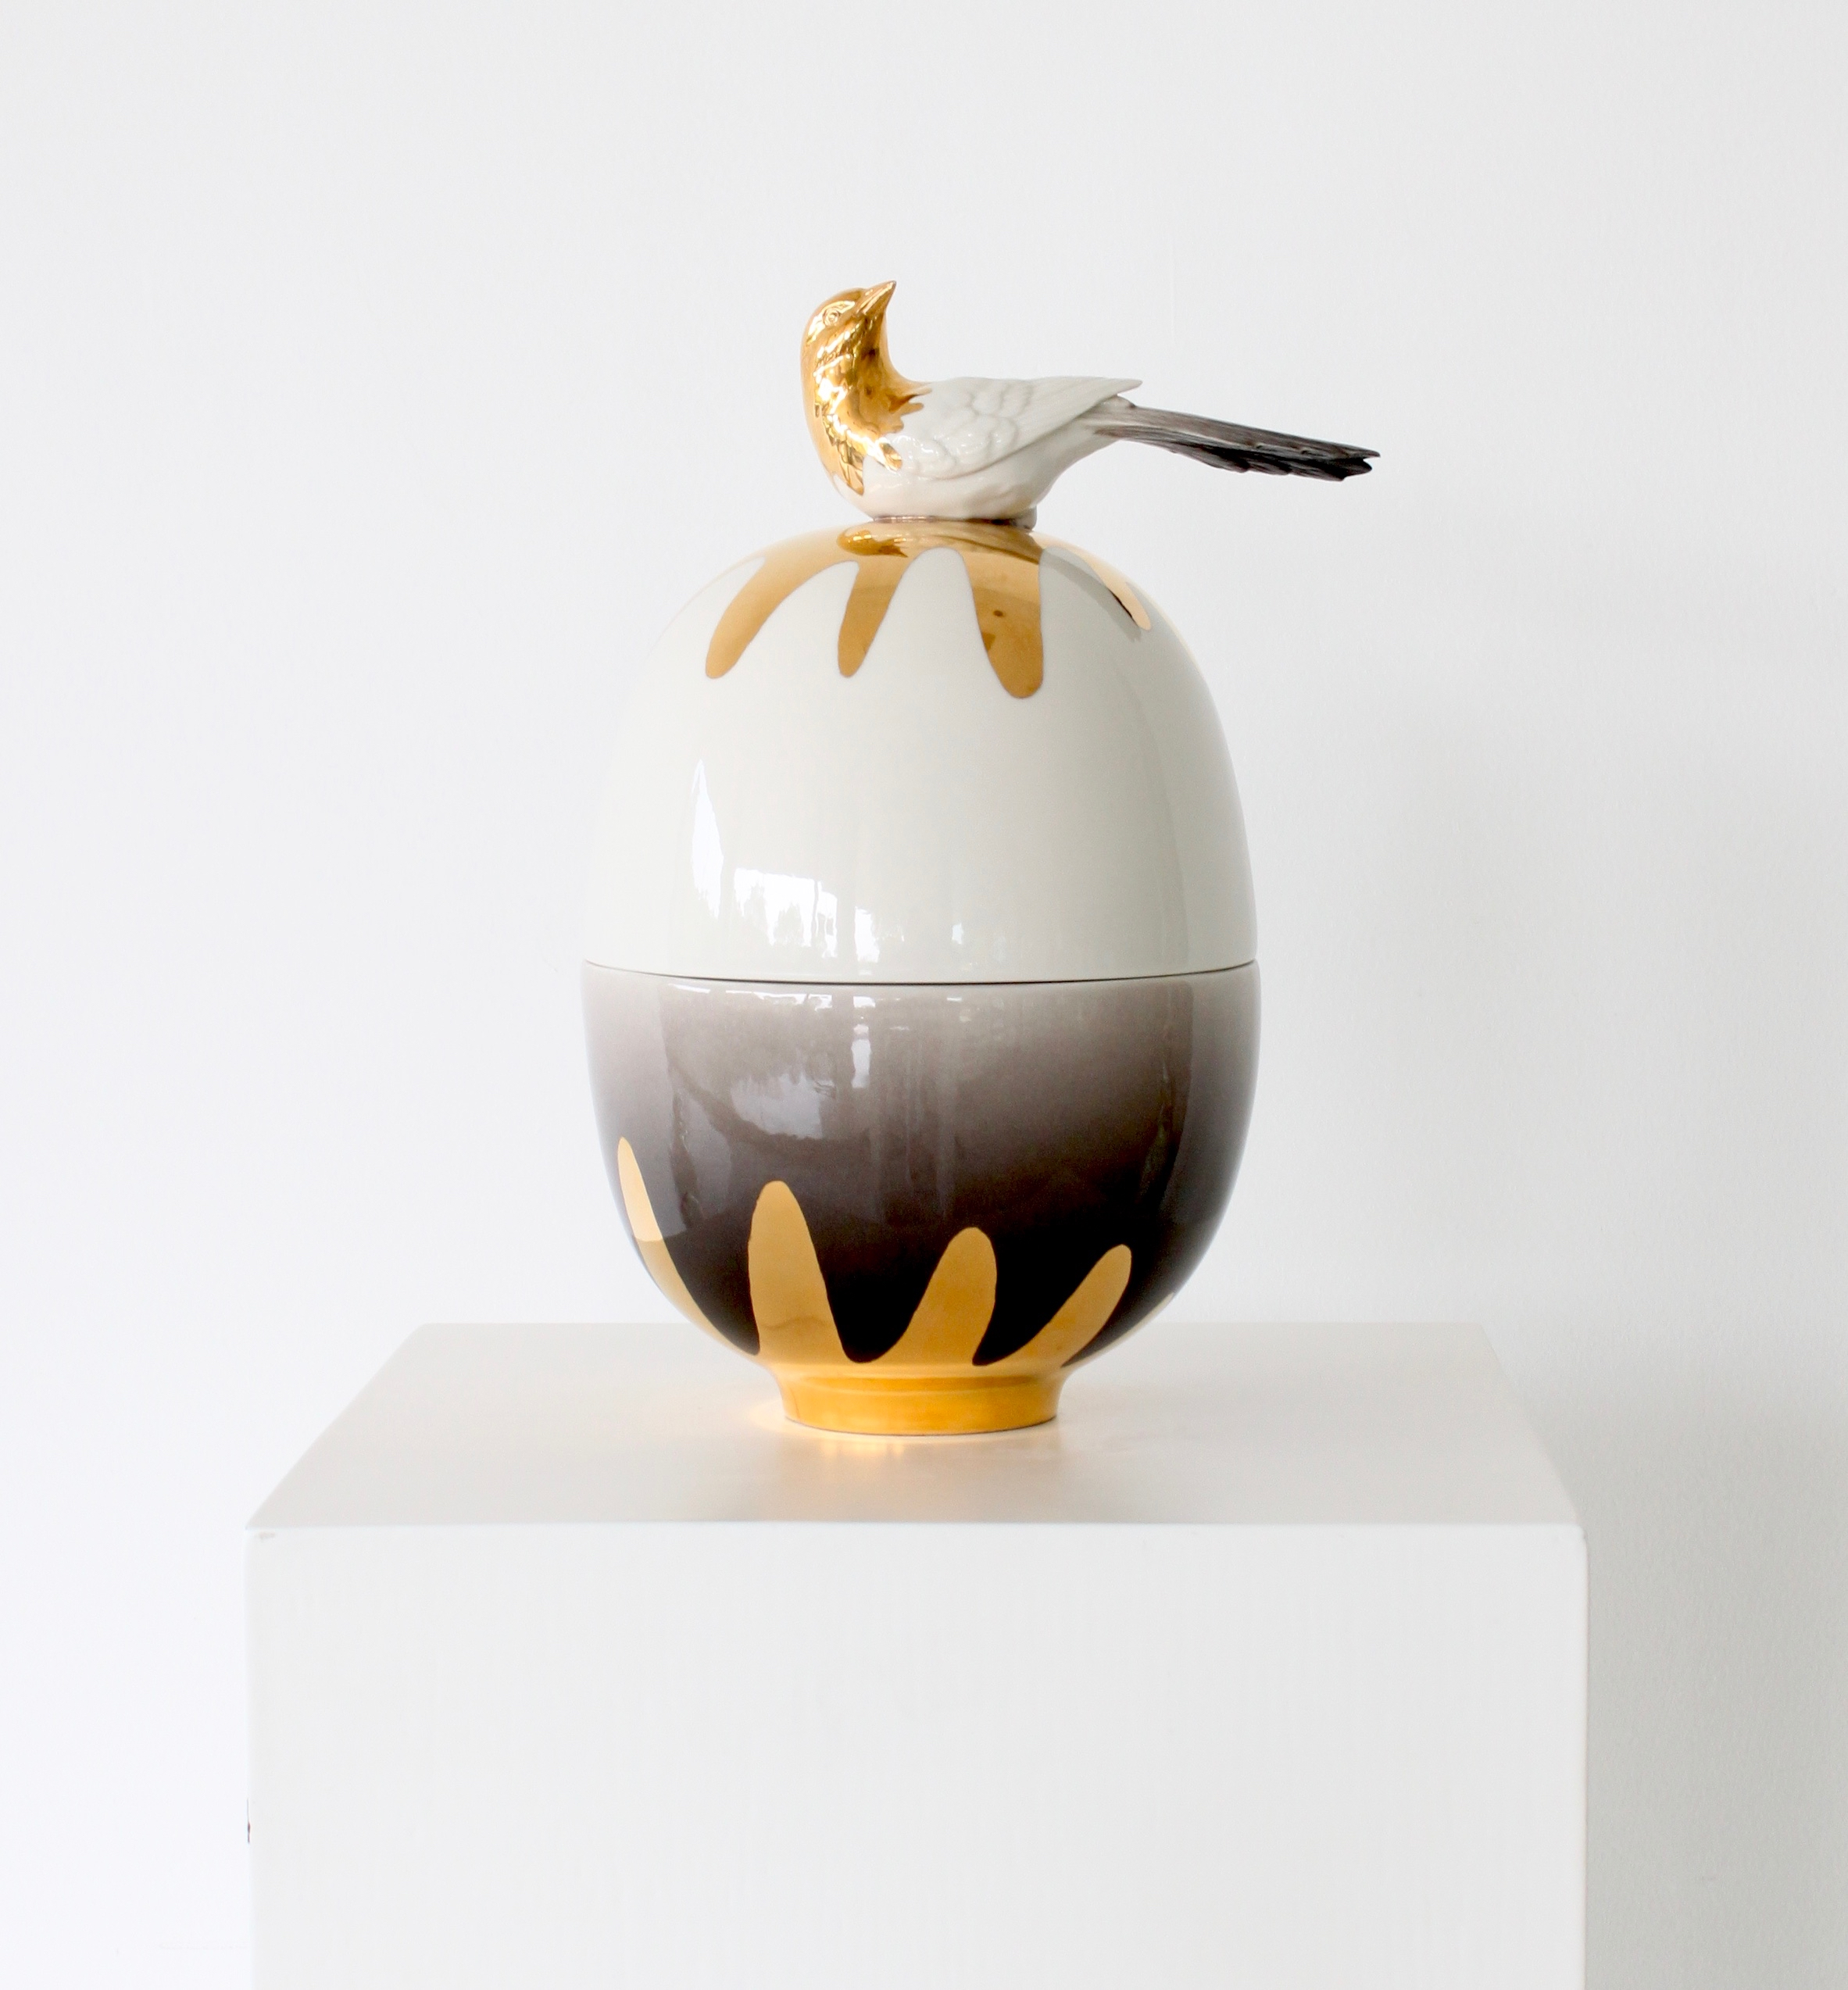 Egg vase small Gold bird - 1.jpg